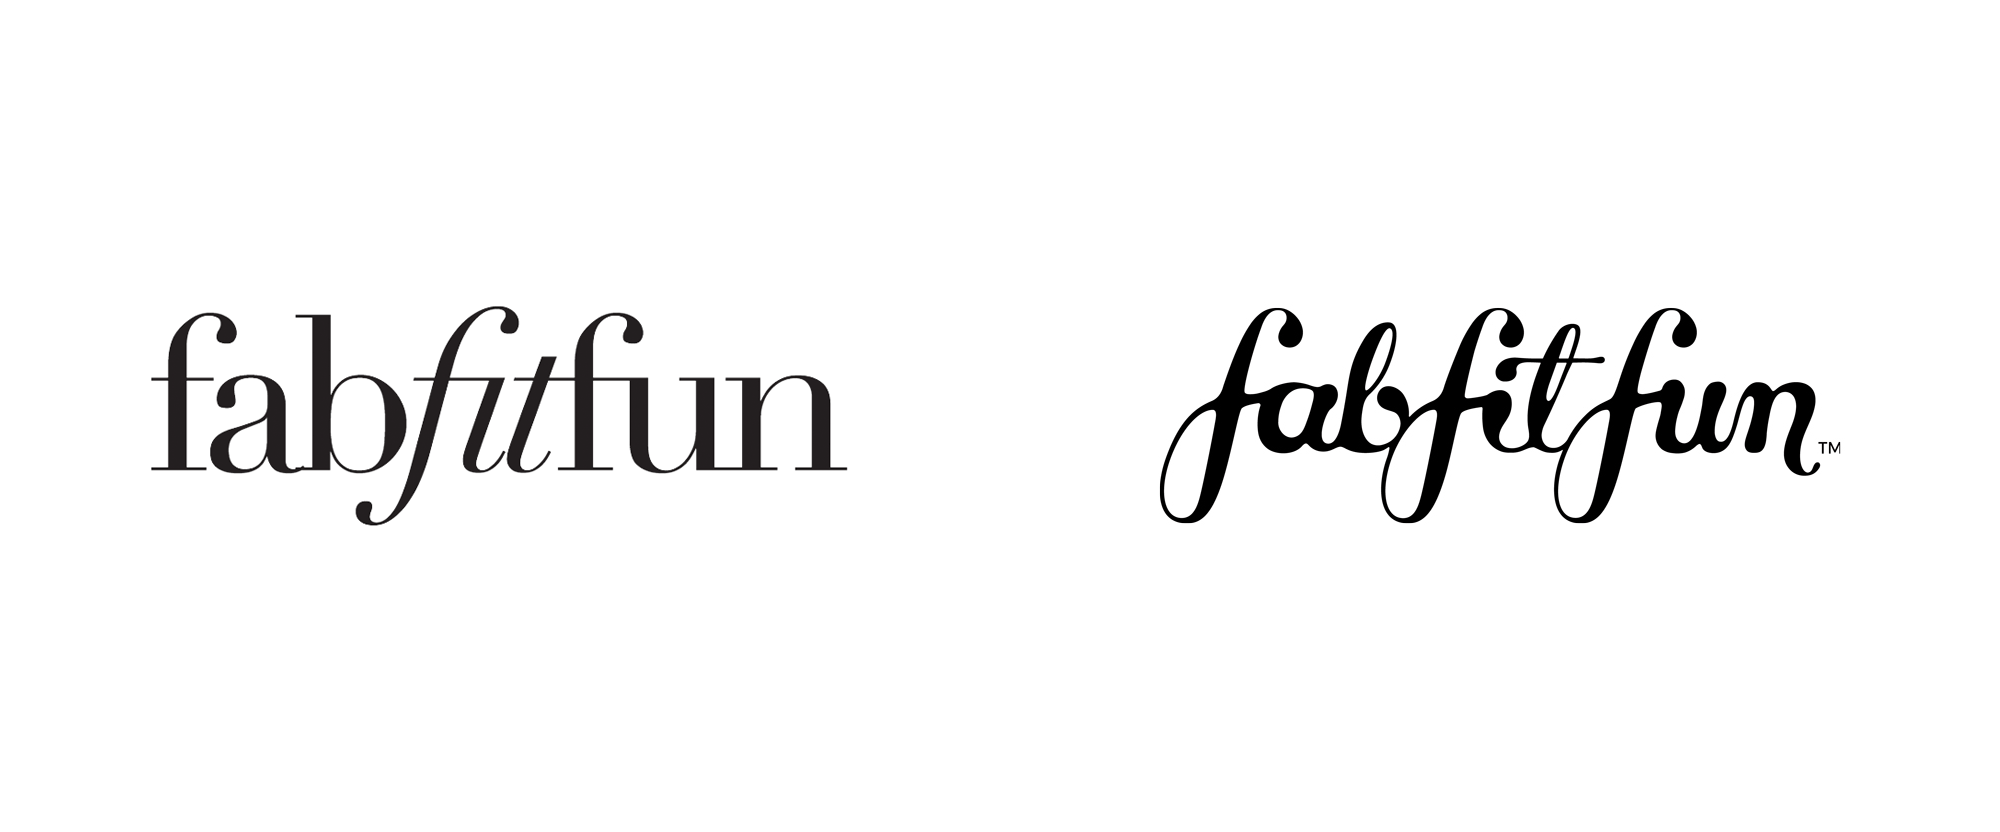 New Logo for FabFitFun